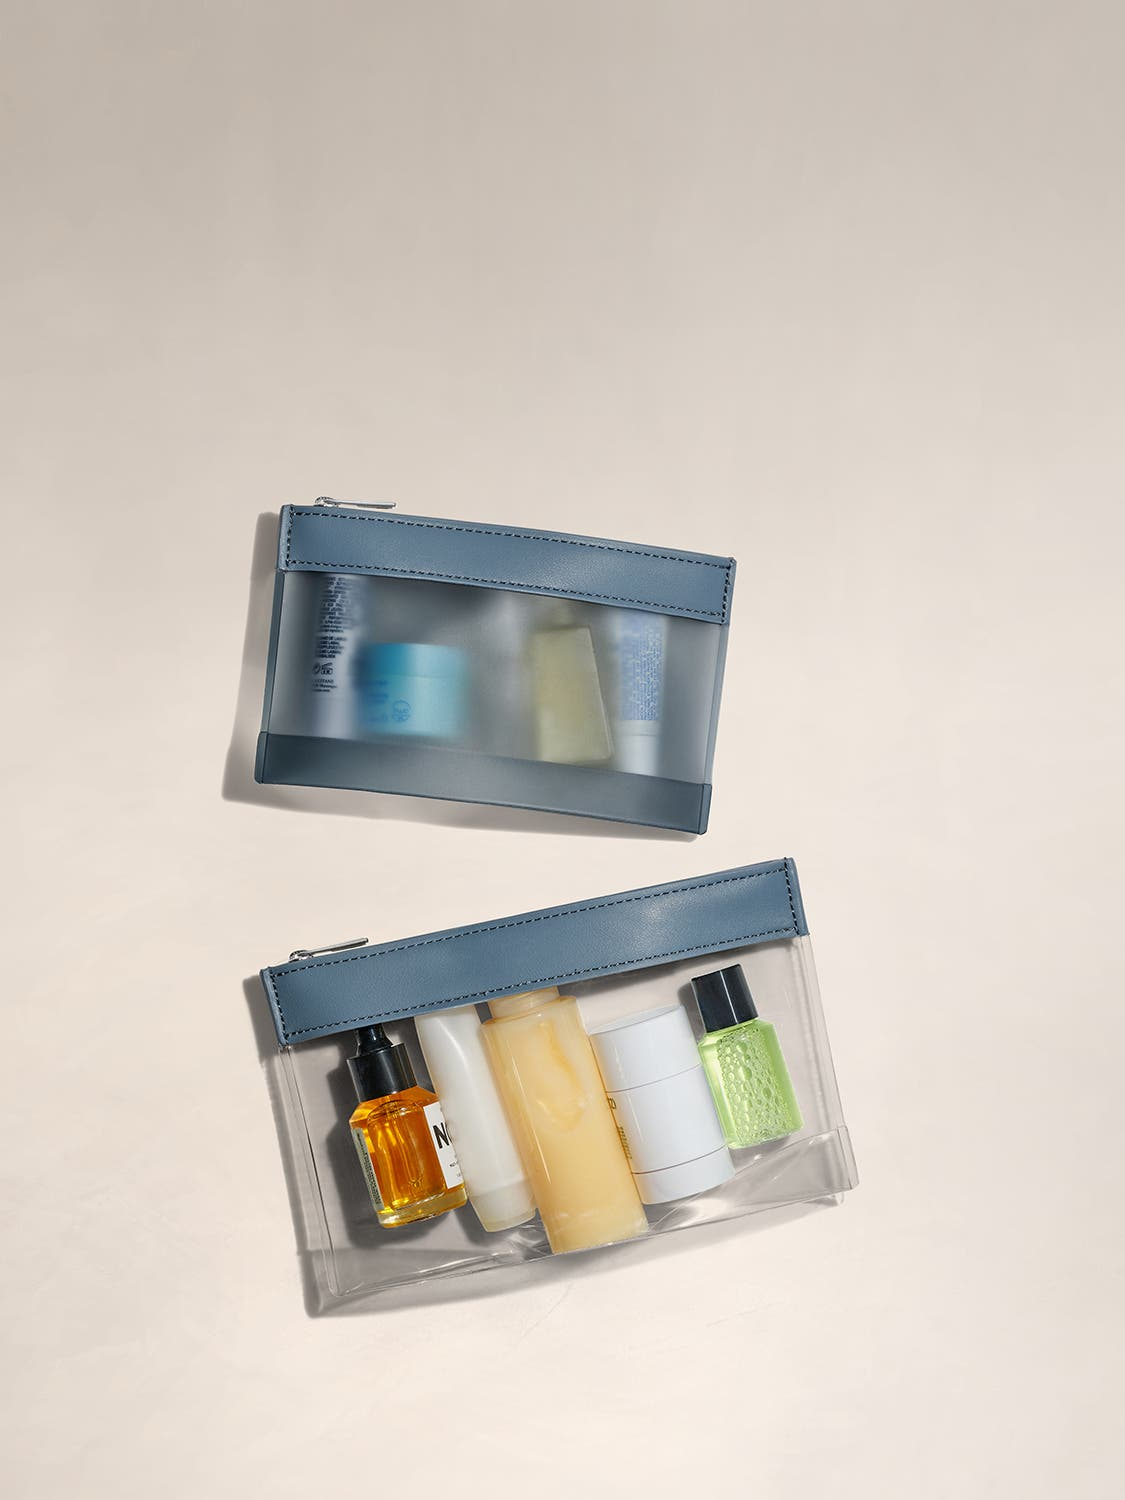 A TSA approved clear pouch set for travel full of toiletries.